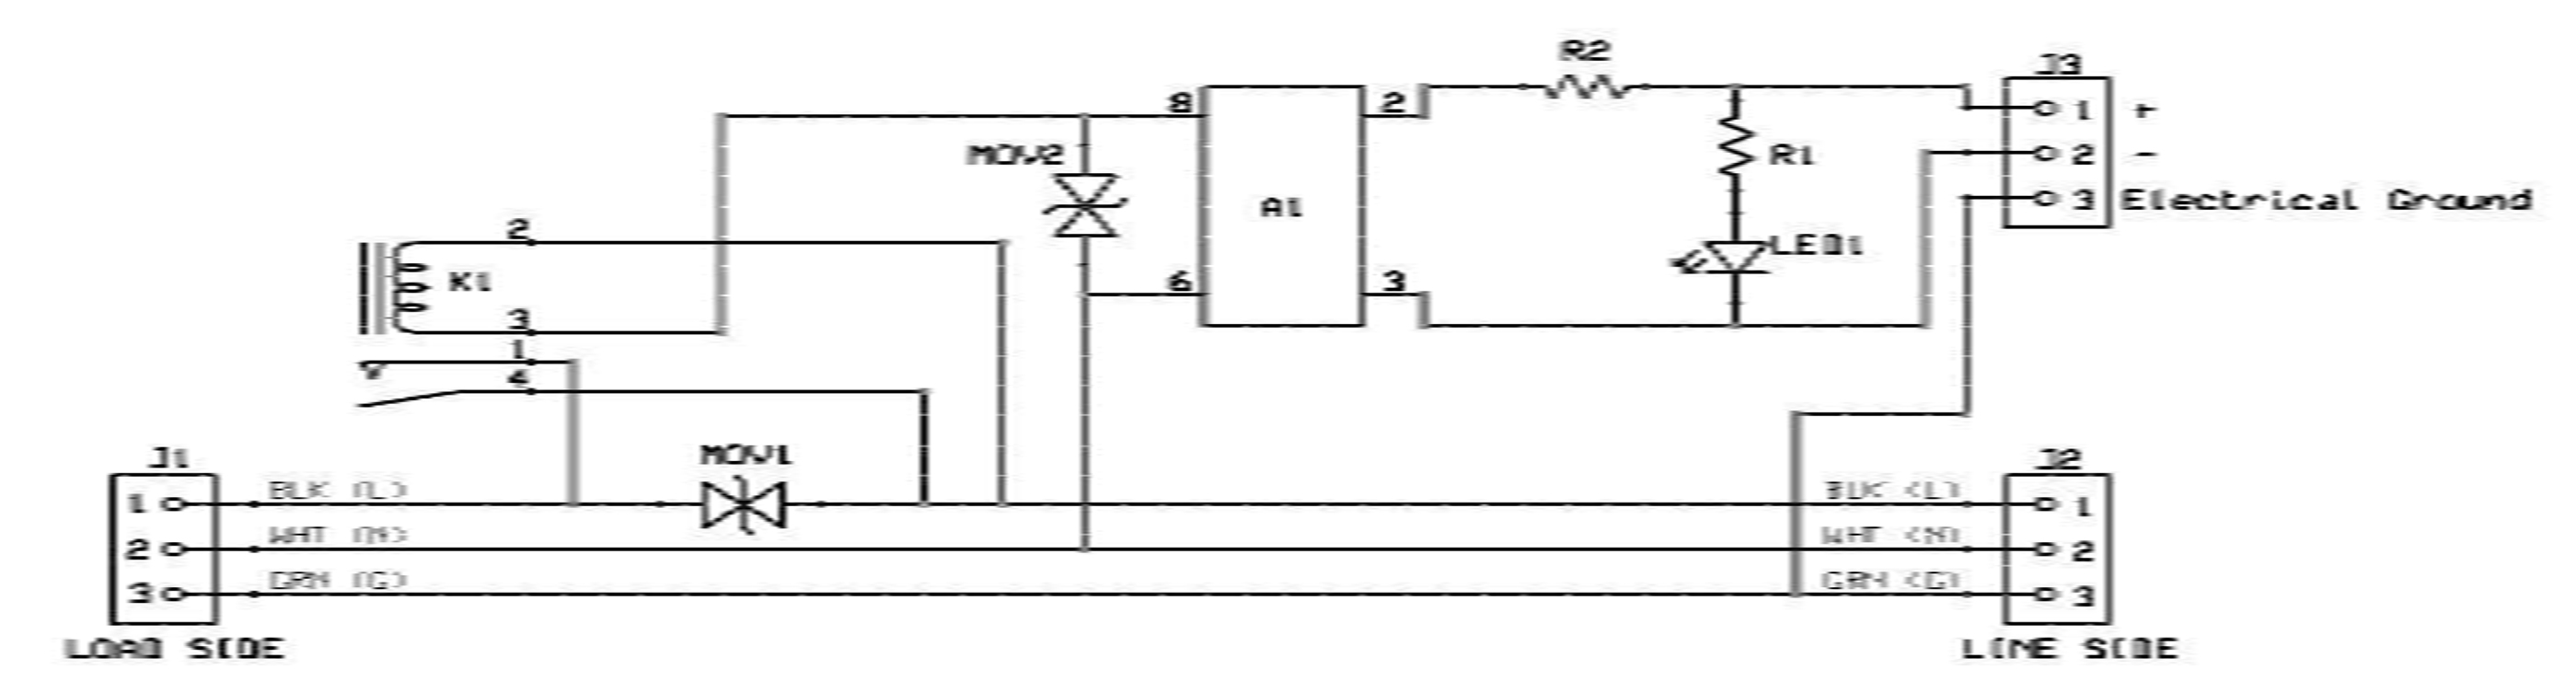 Drivers Relays And Solid State Mbed Power Relay Working Principle Switch Tail Ii Schematic